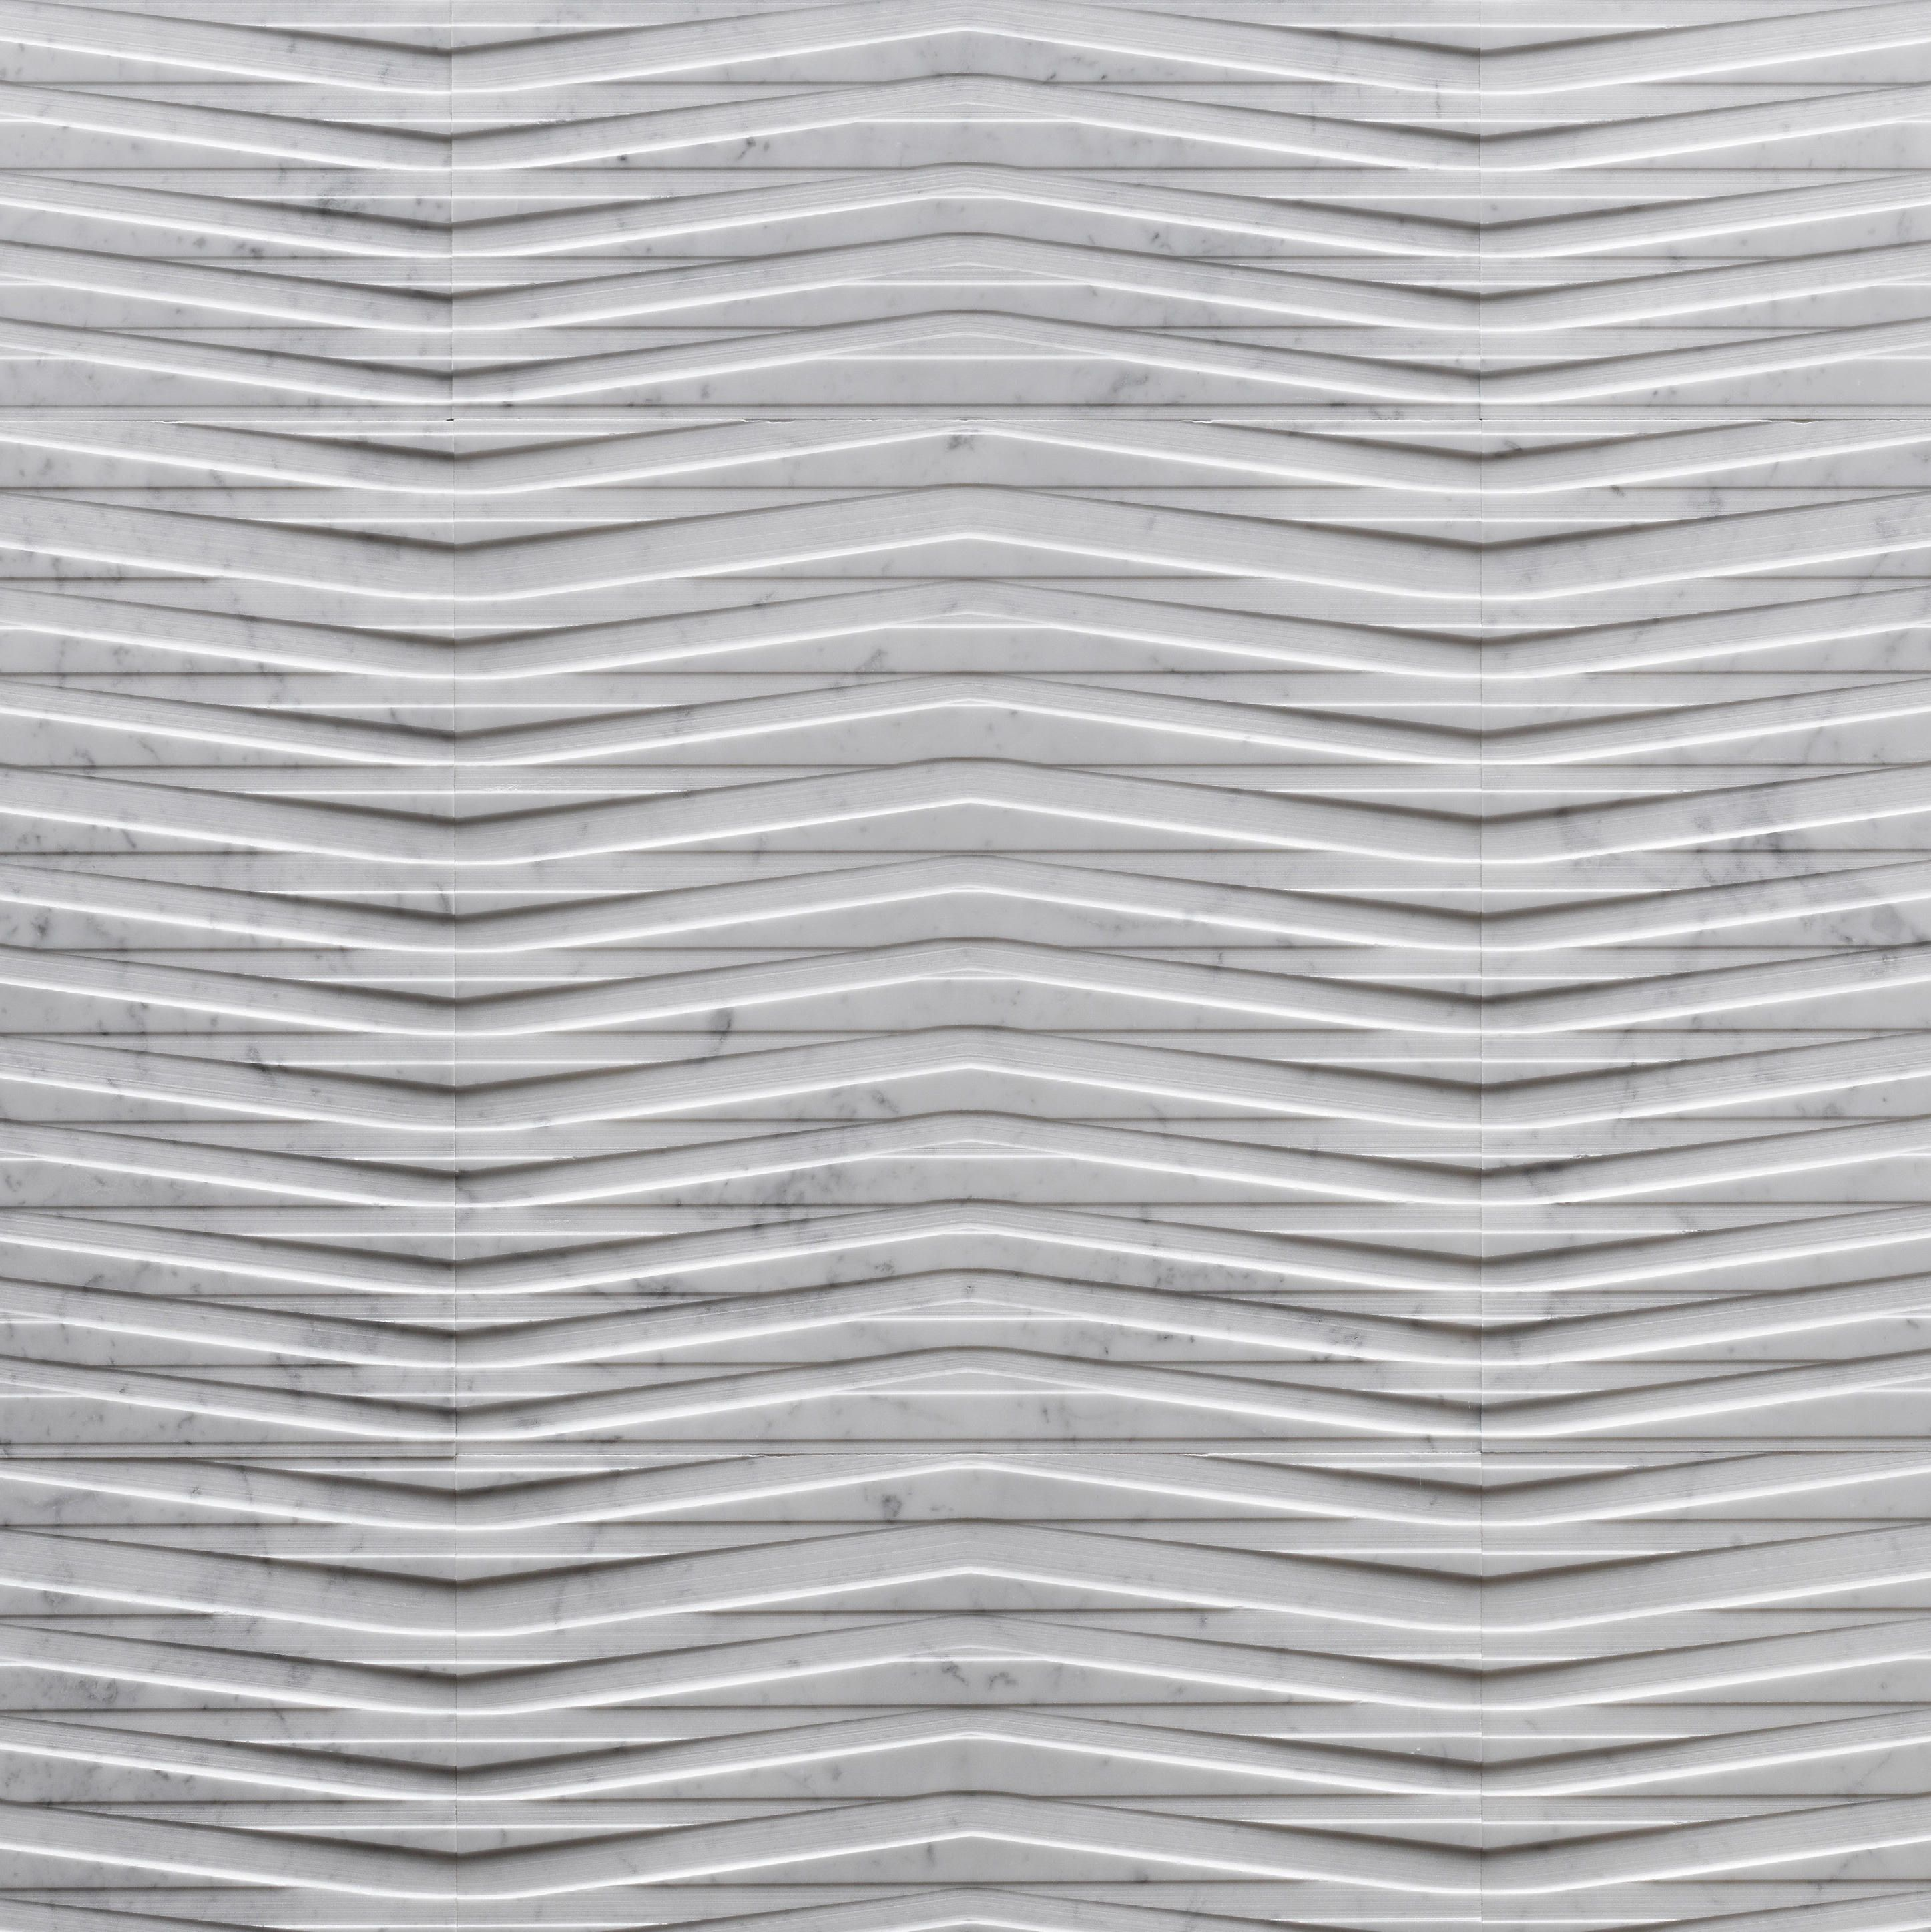 Decorative Stone Tiles Tile Size 457X457X14 Cm Available Materials Bianco Narciso